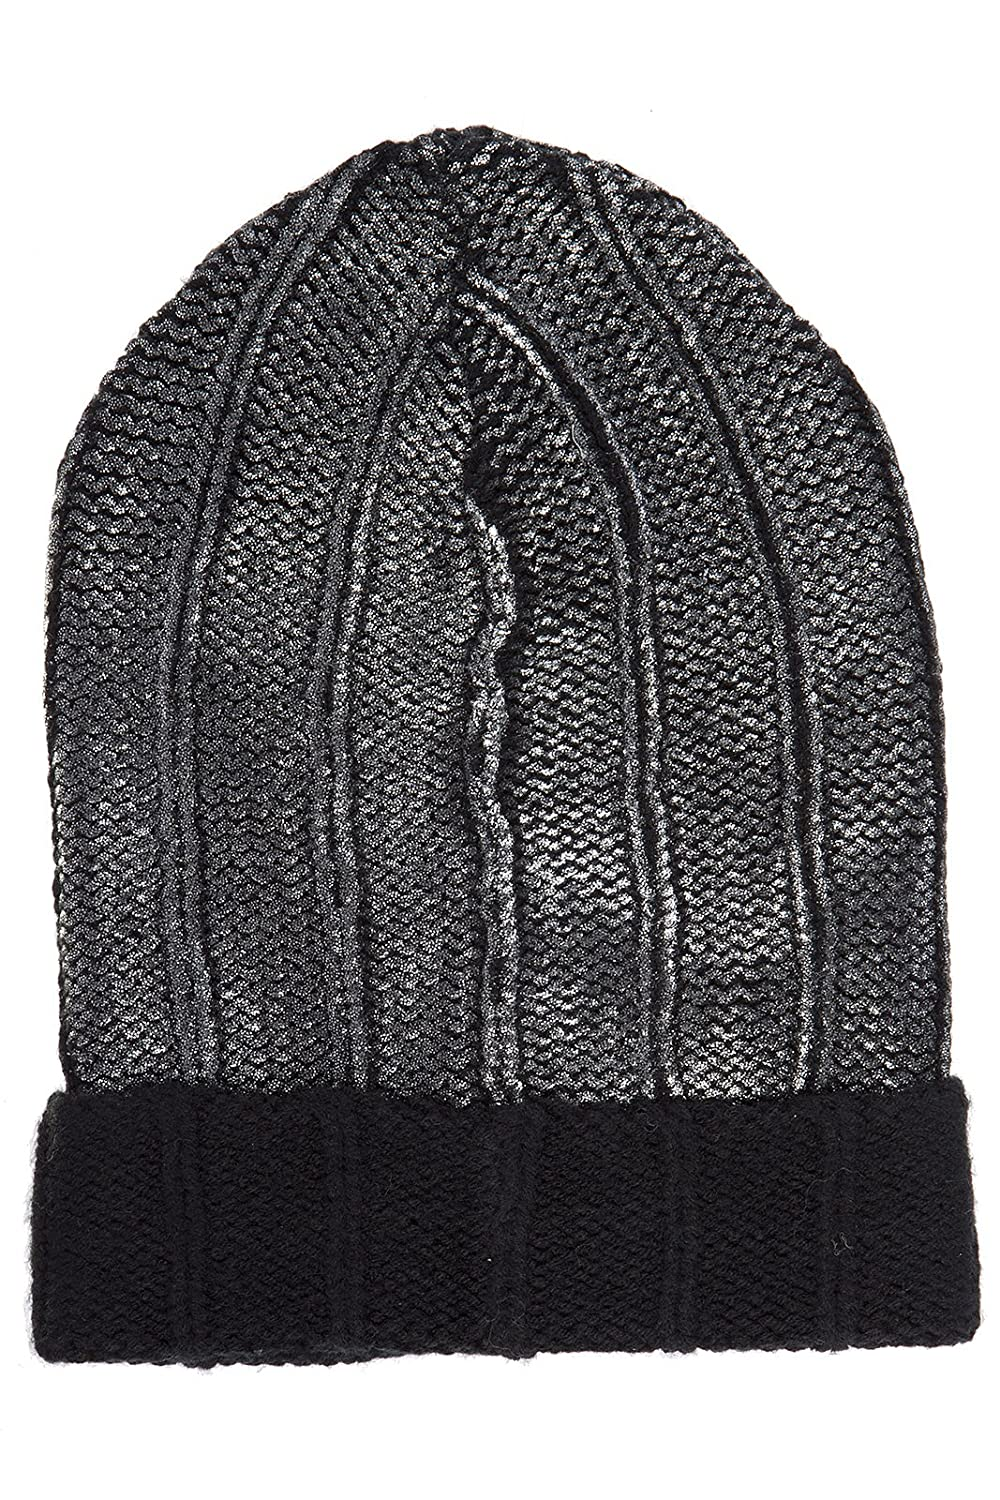 Emporio Armani EA7 women s beanie hat train fashion black US size S 285393  6A732 00020 at Amazon Women s Clothing store  7dce5a3c11b